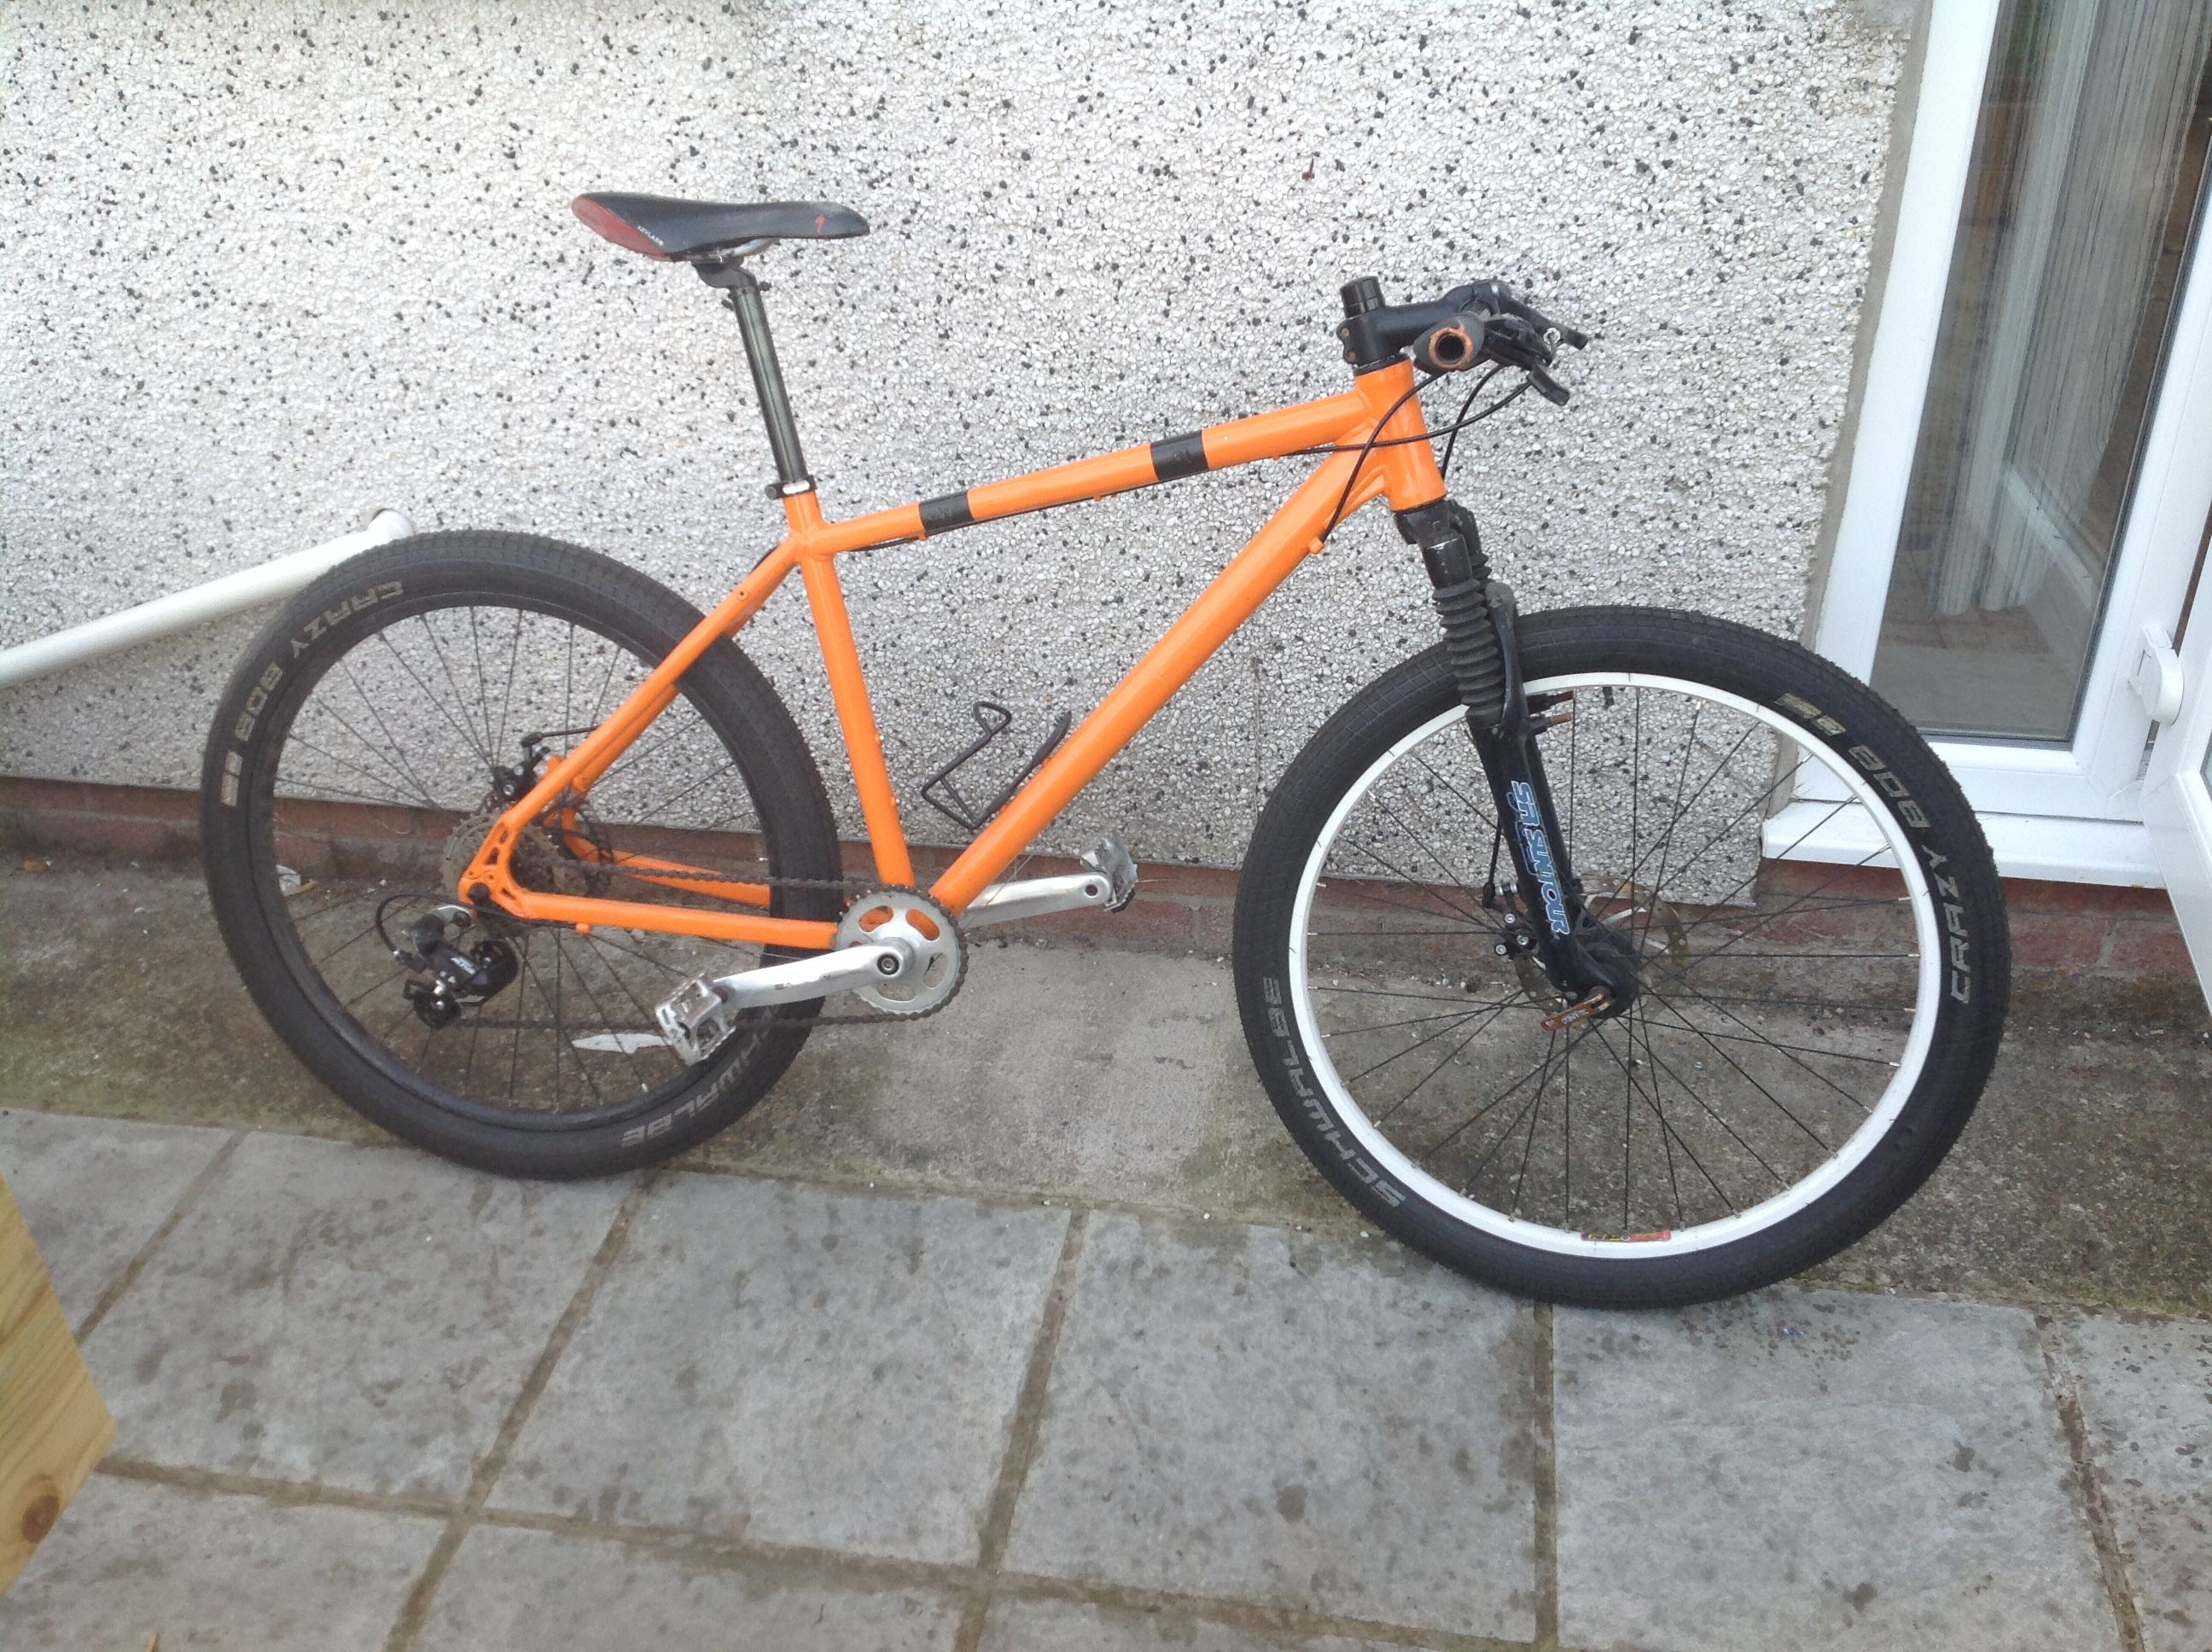 My Revamped Retro Mtb Diy Spray Job Budget Cobbled Together And